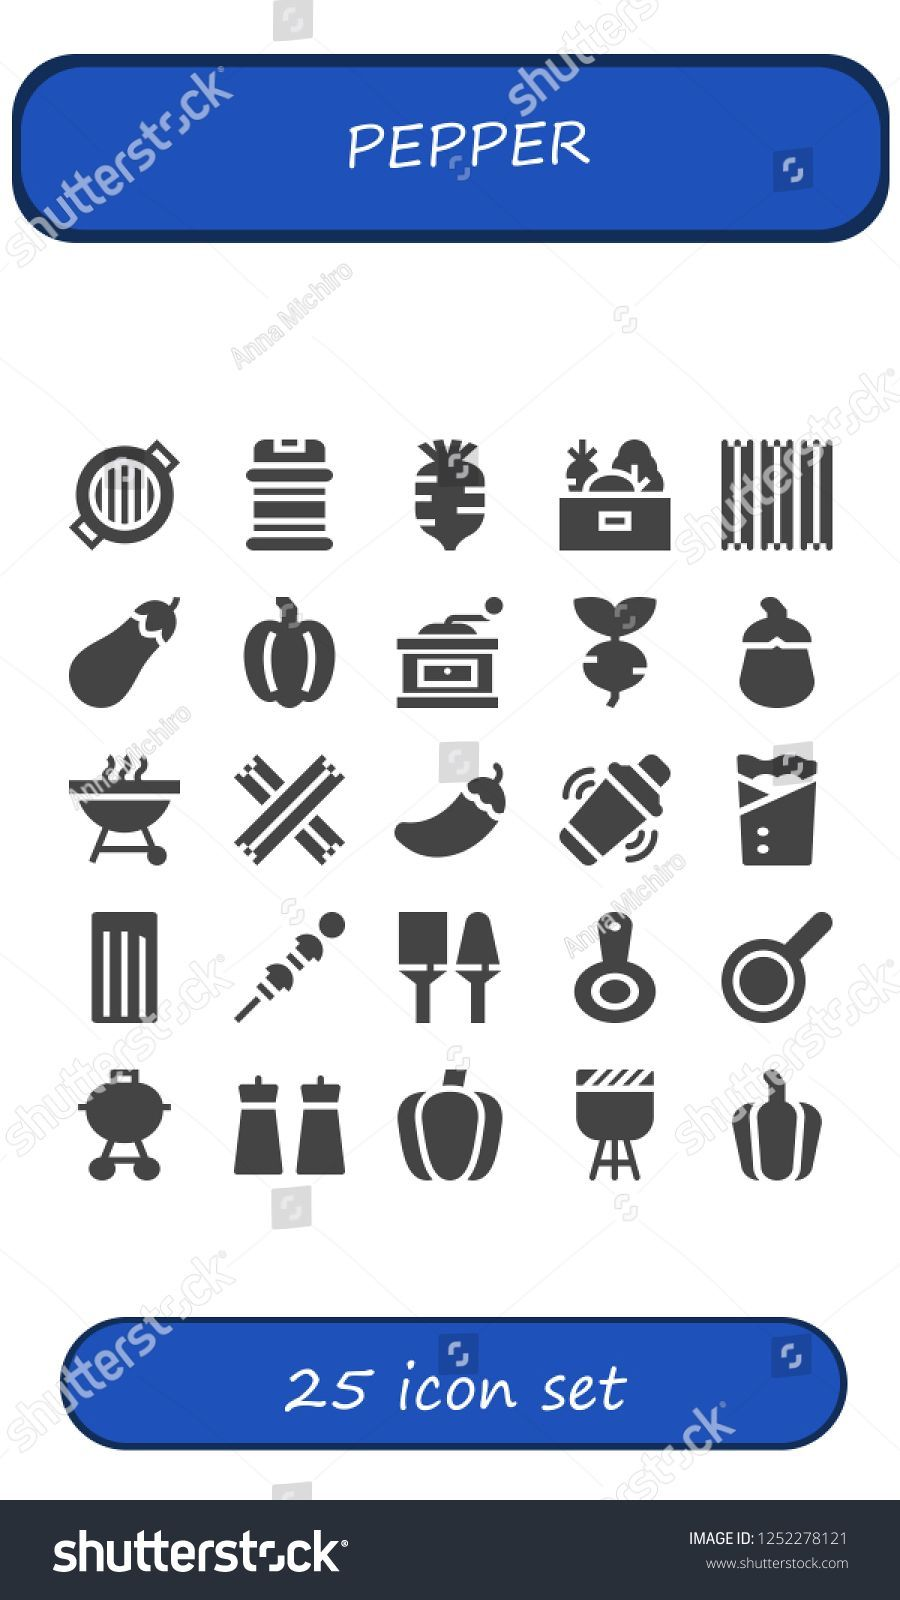 Vector icons pack of 25 filled pepper icons Simple modern icons about Grill Condiments Radish Vegetables Churros Eggplant Pepper Grinder Turnip Aubergine Barbecue Vector icons pack of 25 filled pepper icons Simple modern icons about  Grill Condiments Radish Vegetables Churros Eggplant Pepper nbsp  hellip   #Aubergine #Barbecue #CHURROS #Condiments #Eggplant #Filled #Grill #Grinder #how to make churros with filling #Icons